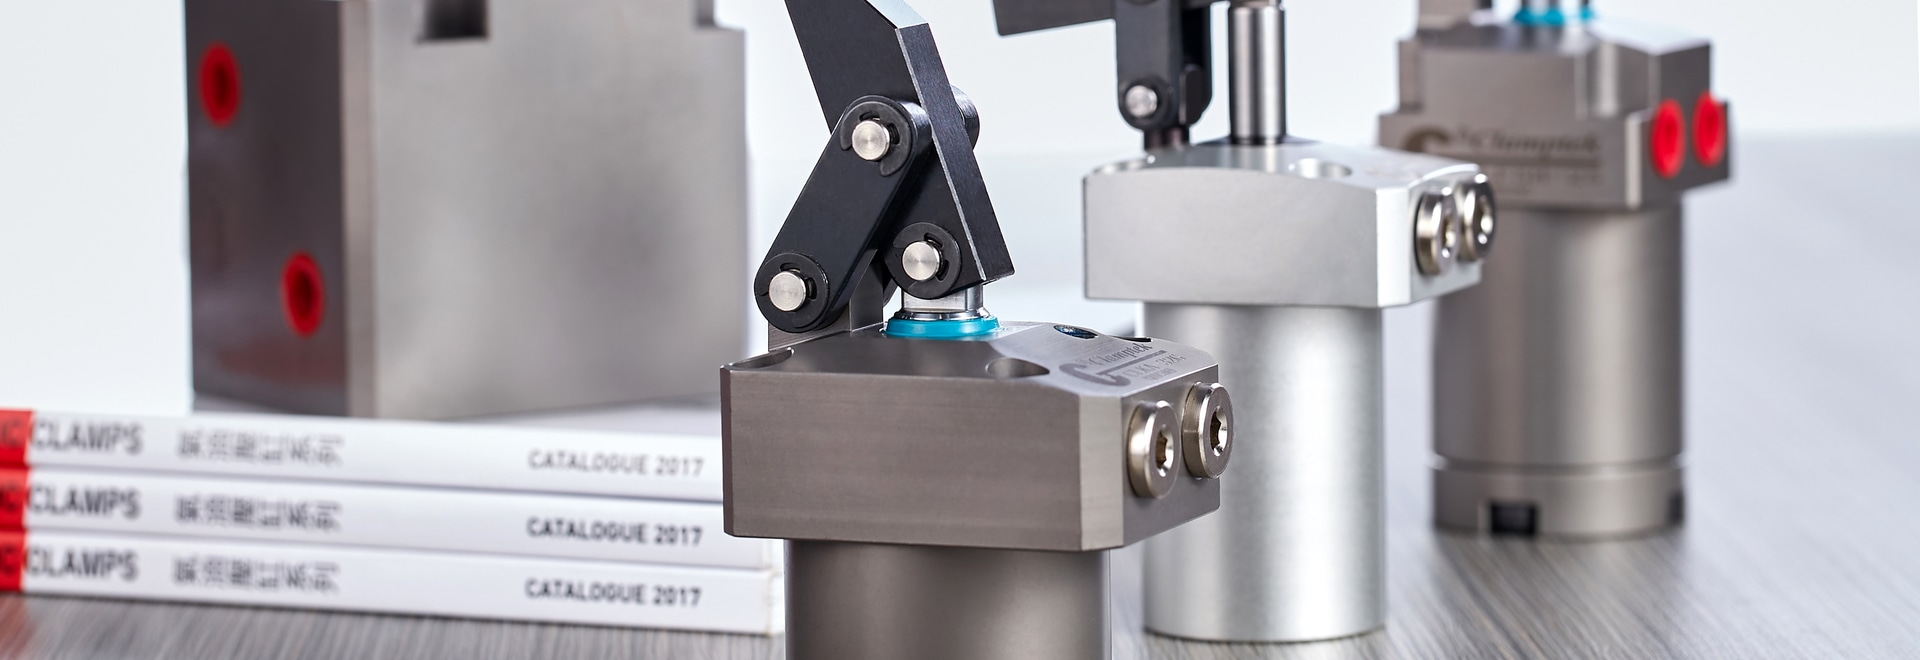 Clamptek in IMTS Chicago 2018 @Booth 121184